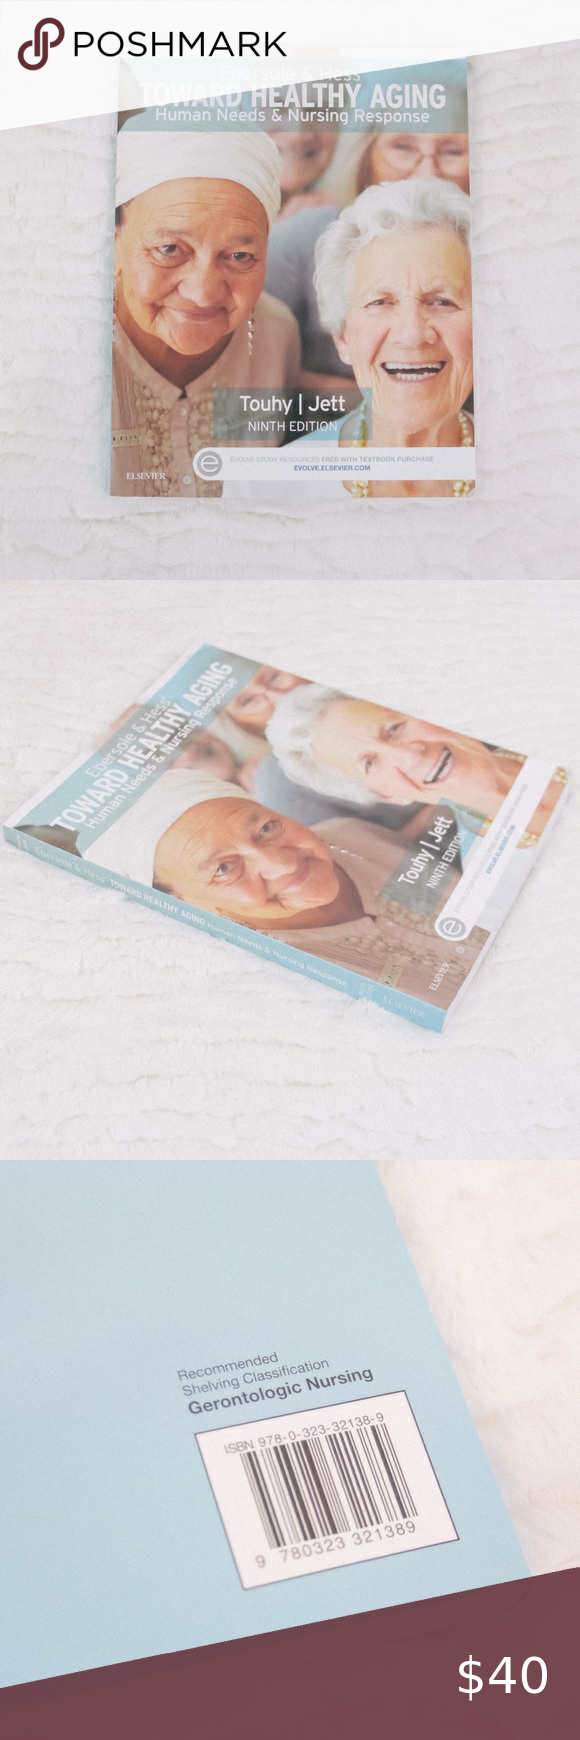 Toward Healthy Aging 9th Edition In 2020 Healthy Aging Aging Healthy